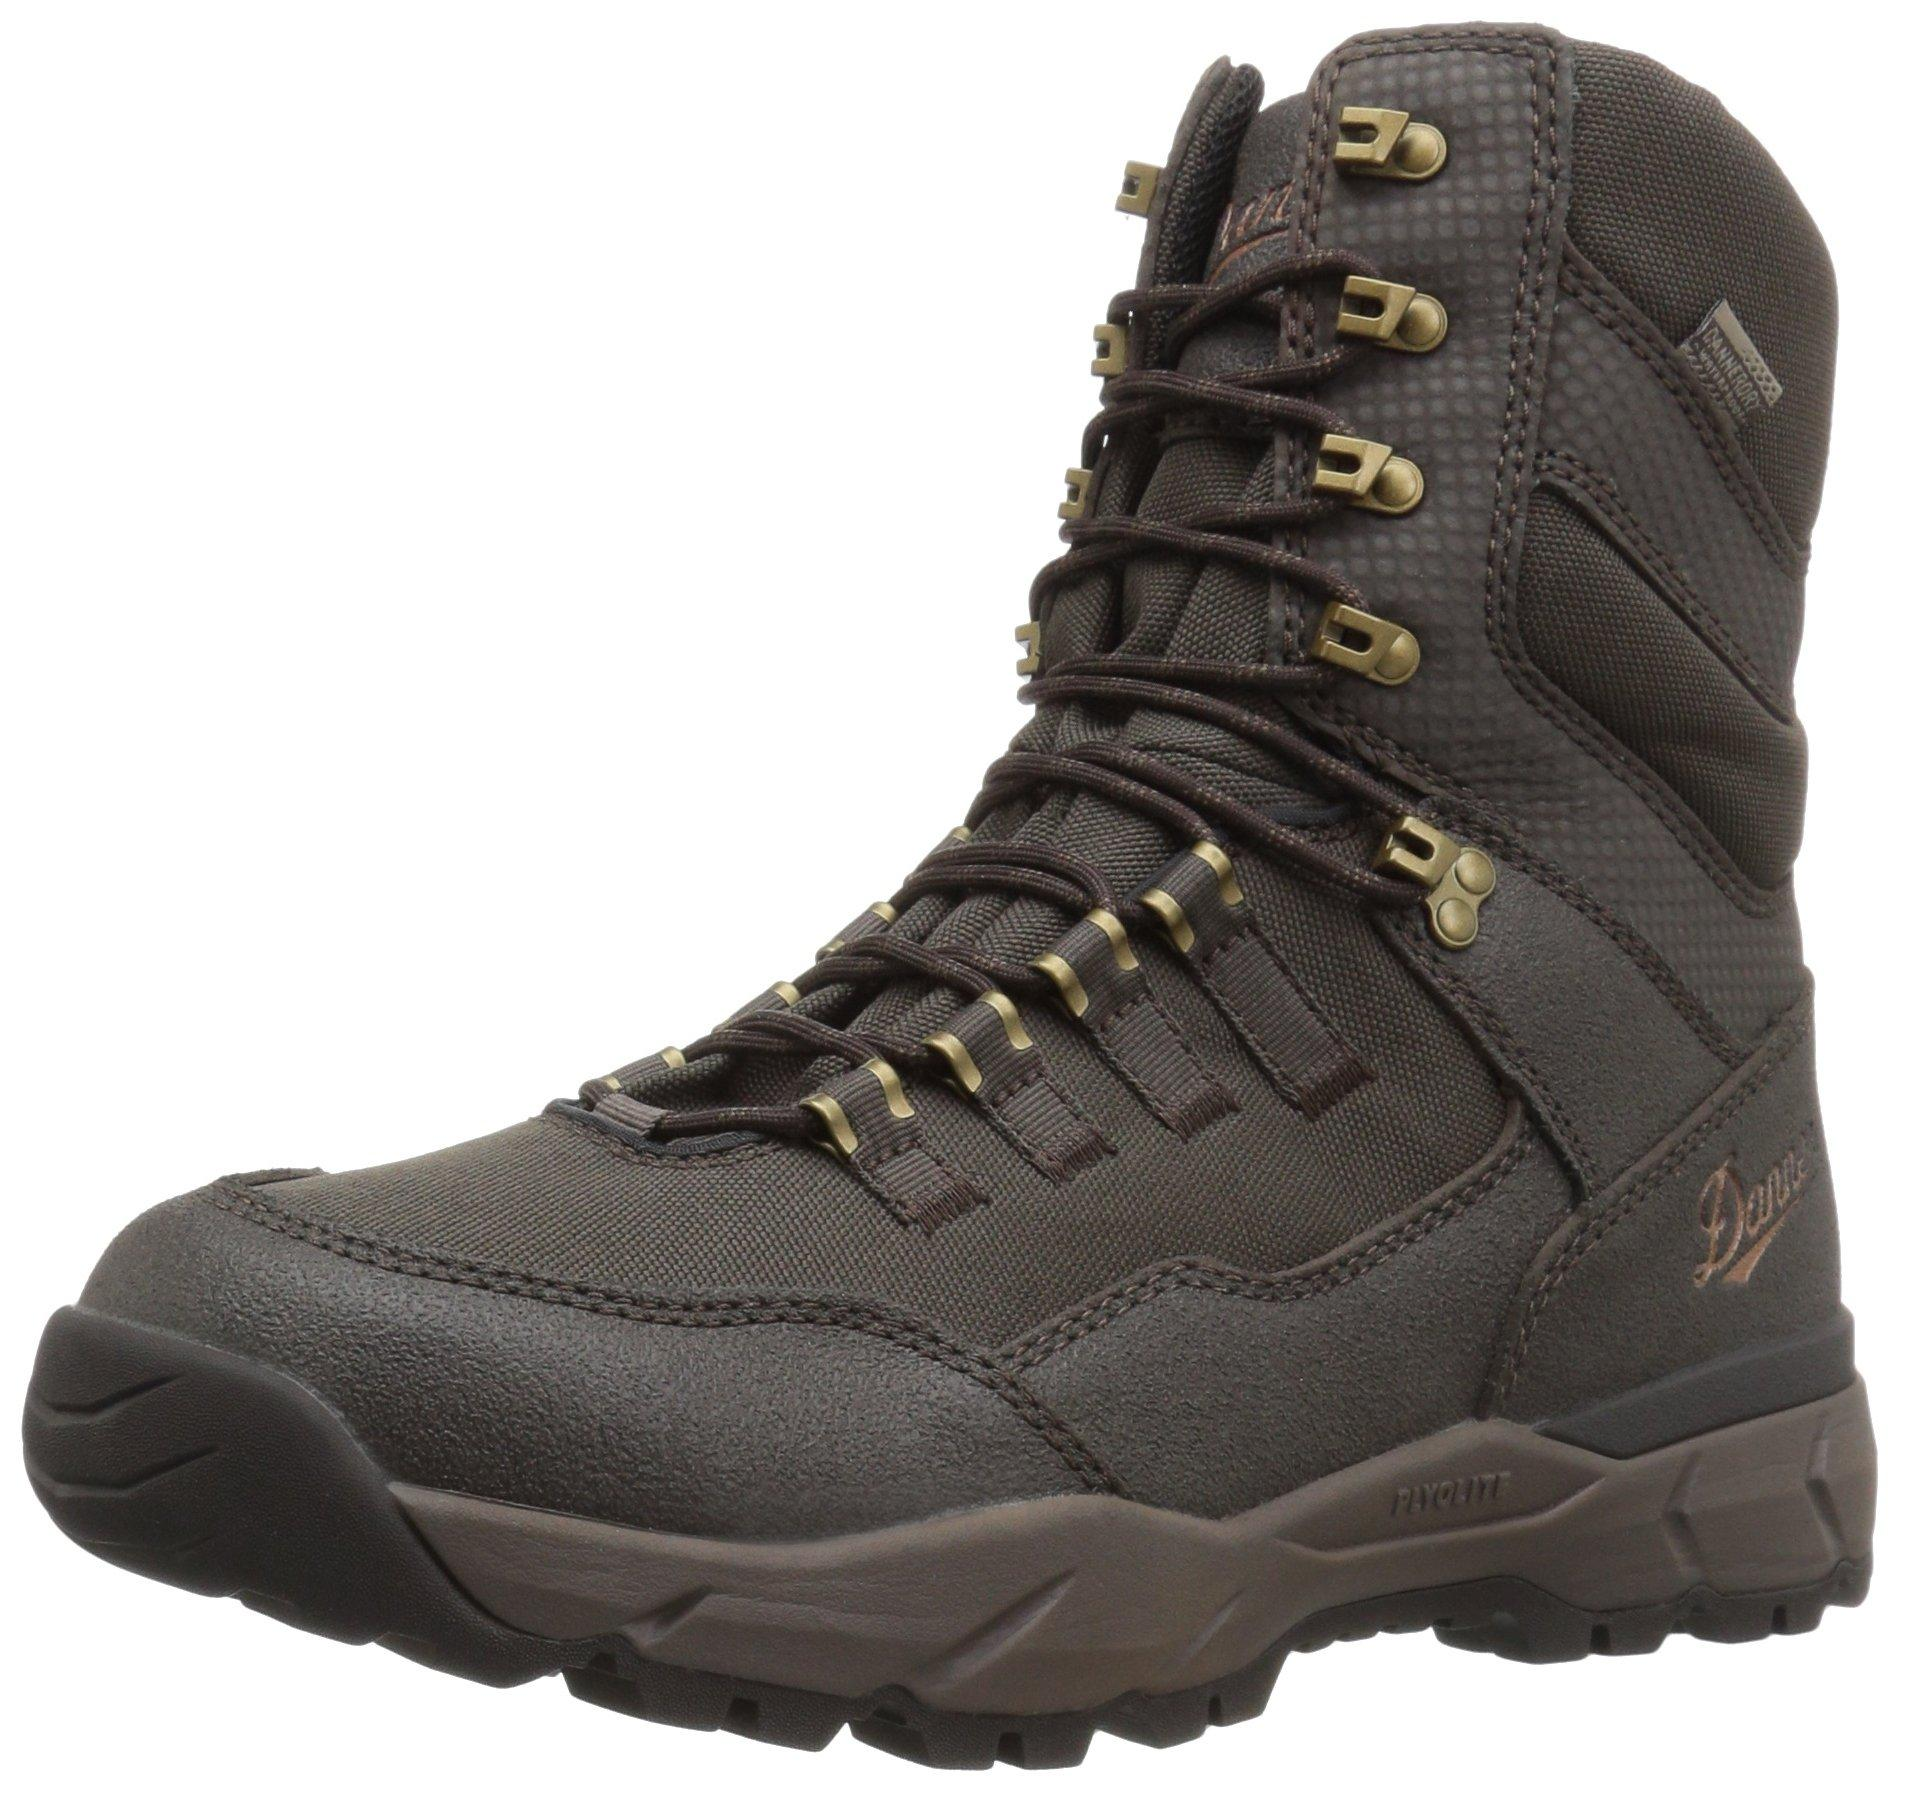 Danner Mens Vital Hunting Shoes, Brown, 9 2e Us By Galleon.ph.